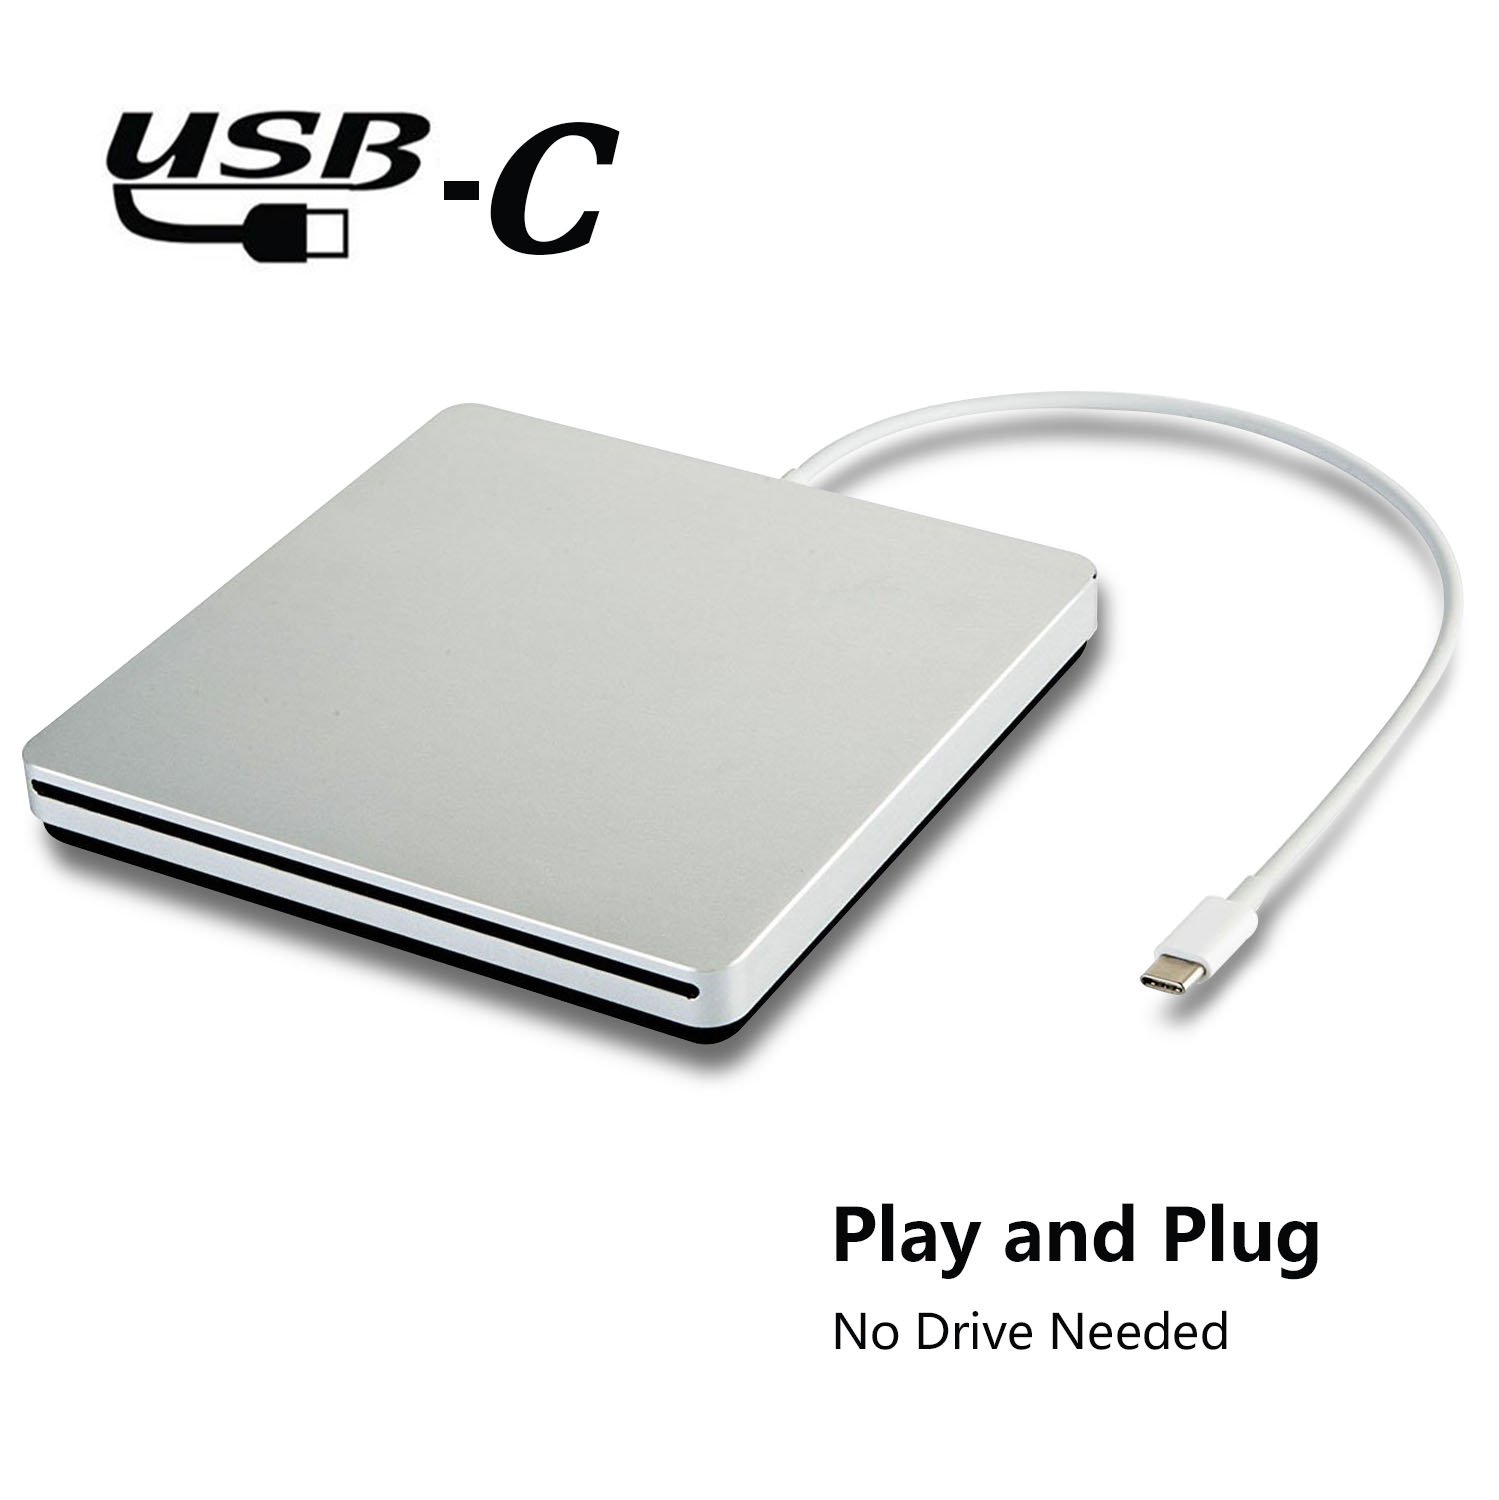 tengertang TYPE-C Super external drive,USB portable External DVD/CD Drive Burner/Reader/Rewriter for the latest Macbook/MacBook Pro/ASUS/DELL Latitude with USB-C Port (silver)